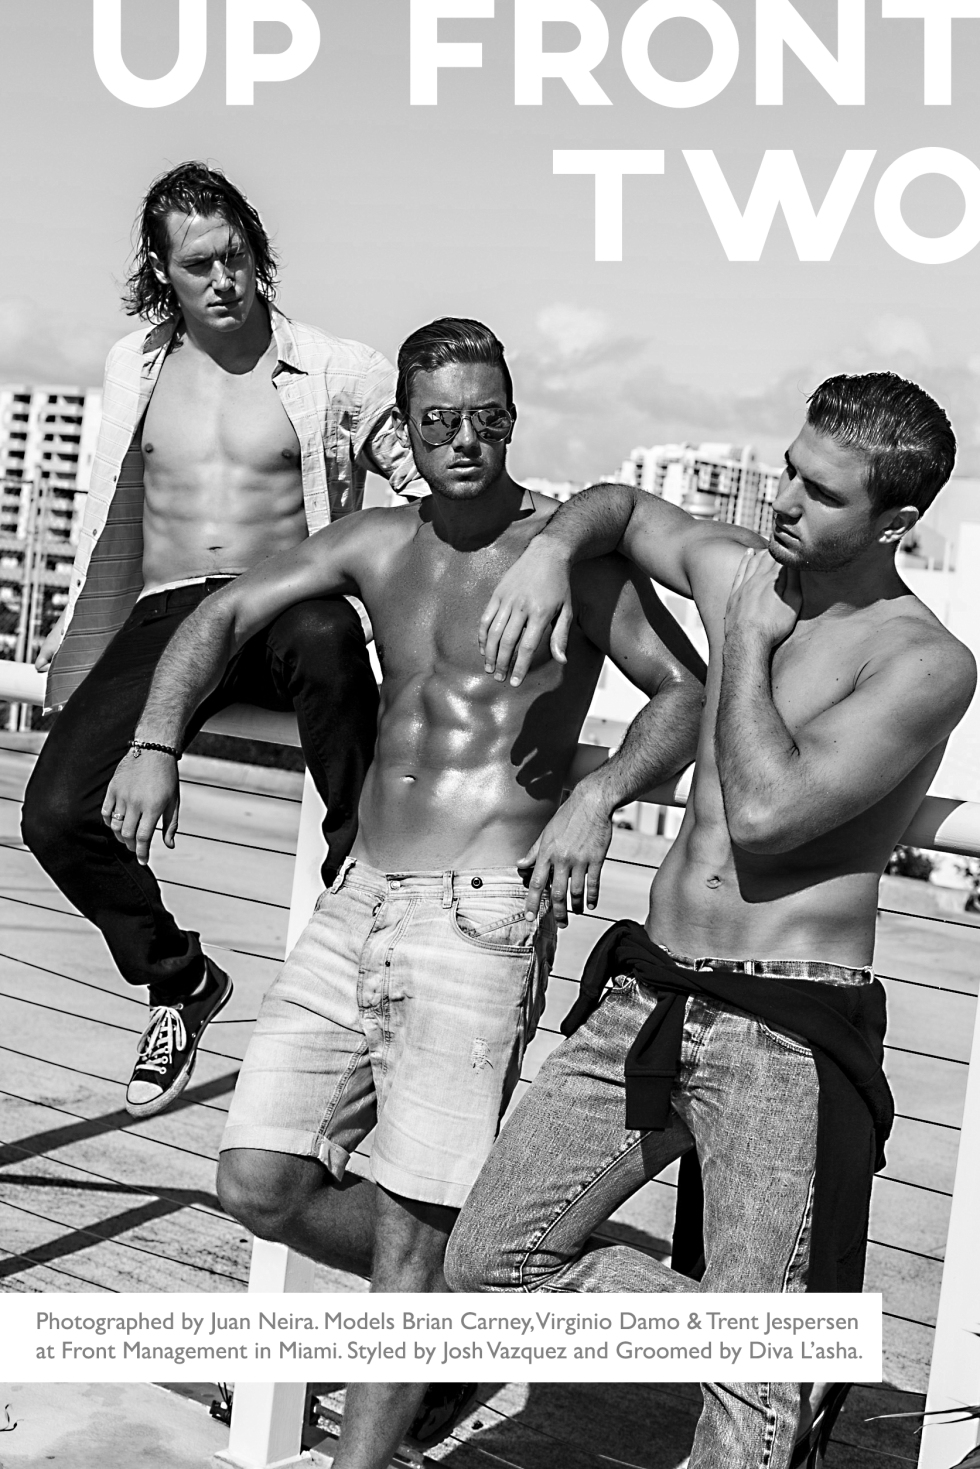 """Up Front Two"" is the new work exposed by Photographer Juan Neira, starring male models Brian Carney, Virginio Damo and Trent Jespersen all this guys are from Front Management in Miami. Styled by Josh Vazquez and grooming by Diva L'asha. Accustomed to seals Juan Neira, this is a great job presenting to all our viewers."